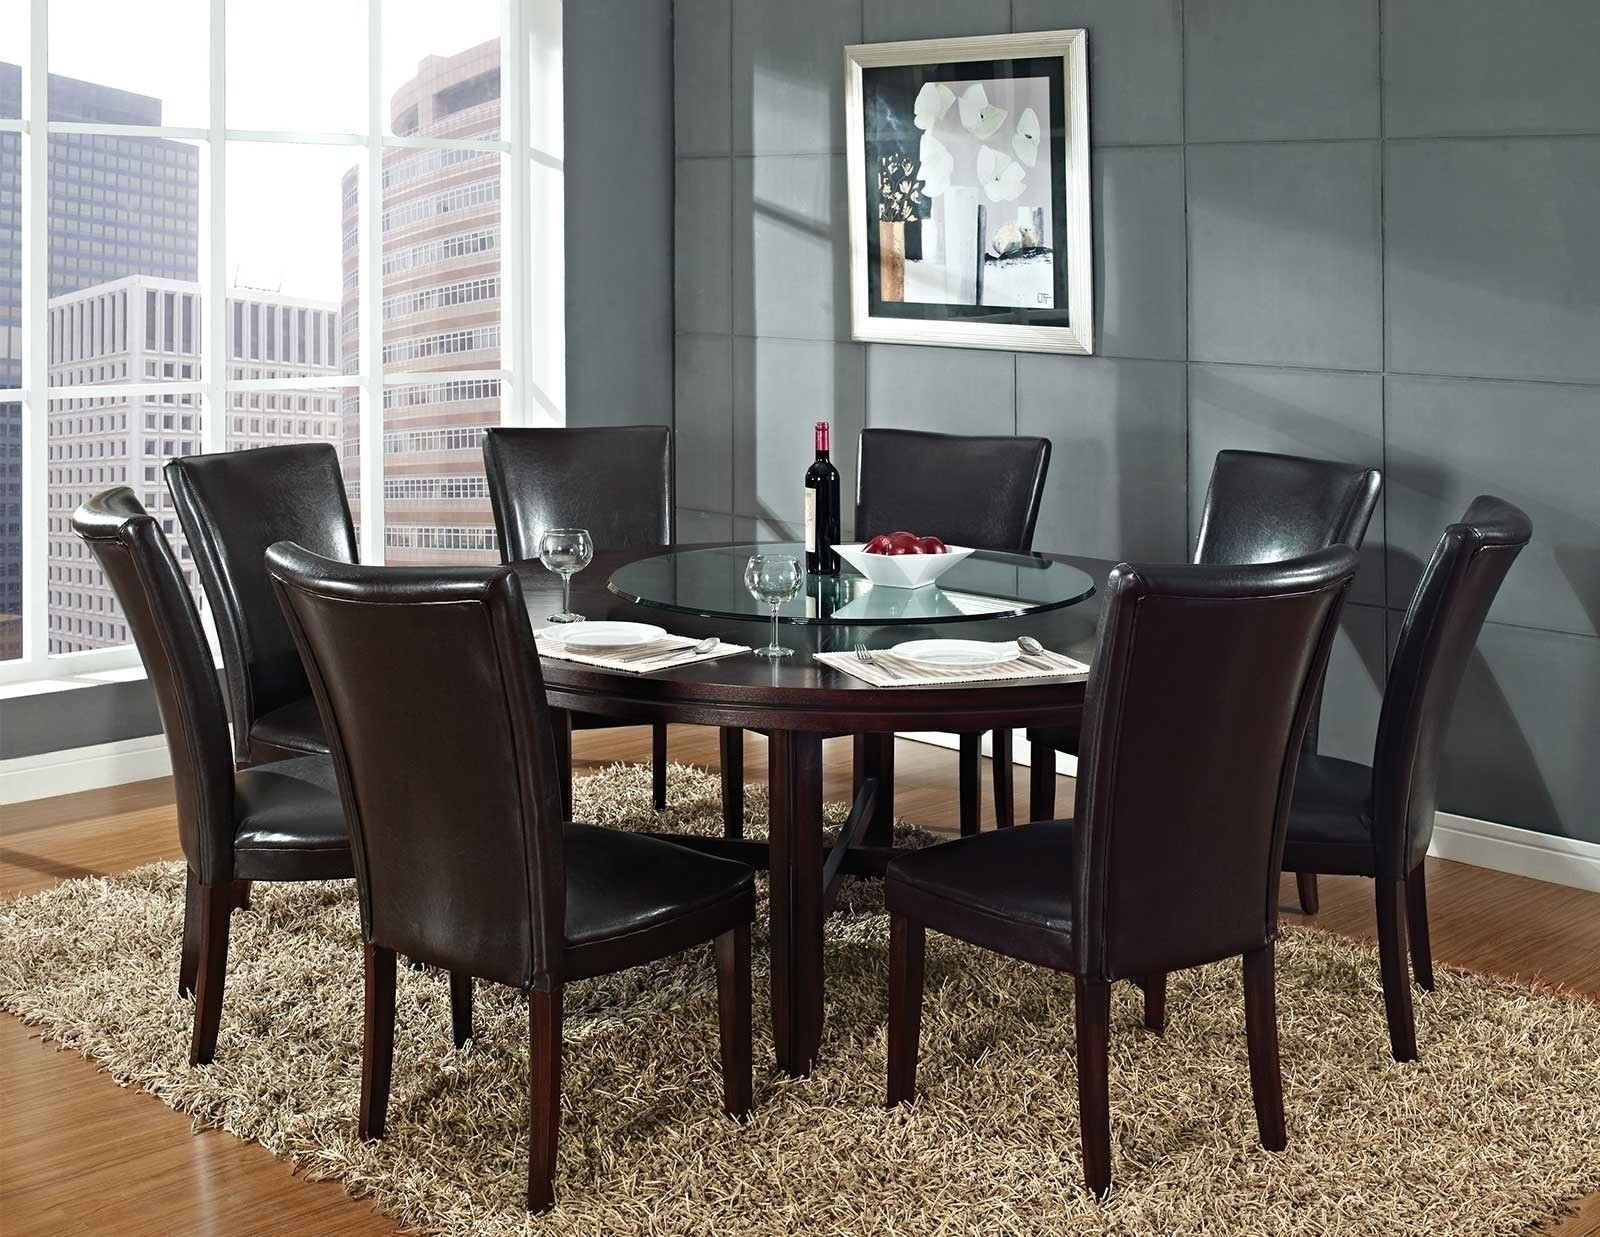 8 Seater Round Dining Table Sets • Table Setting Ideas Pertaining To Well Known 8 Seater Round Dining Table And Chairs (View 11 of 25)